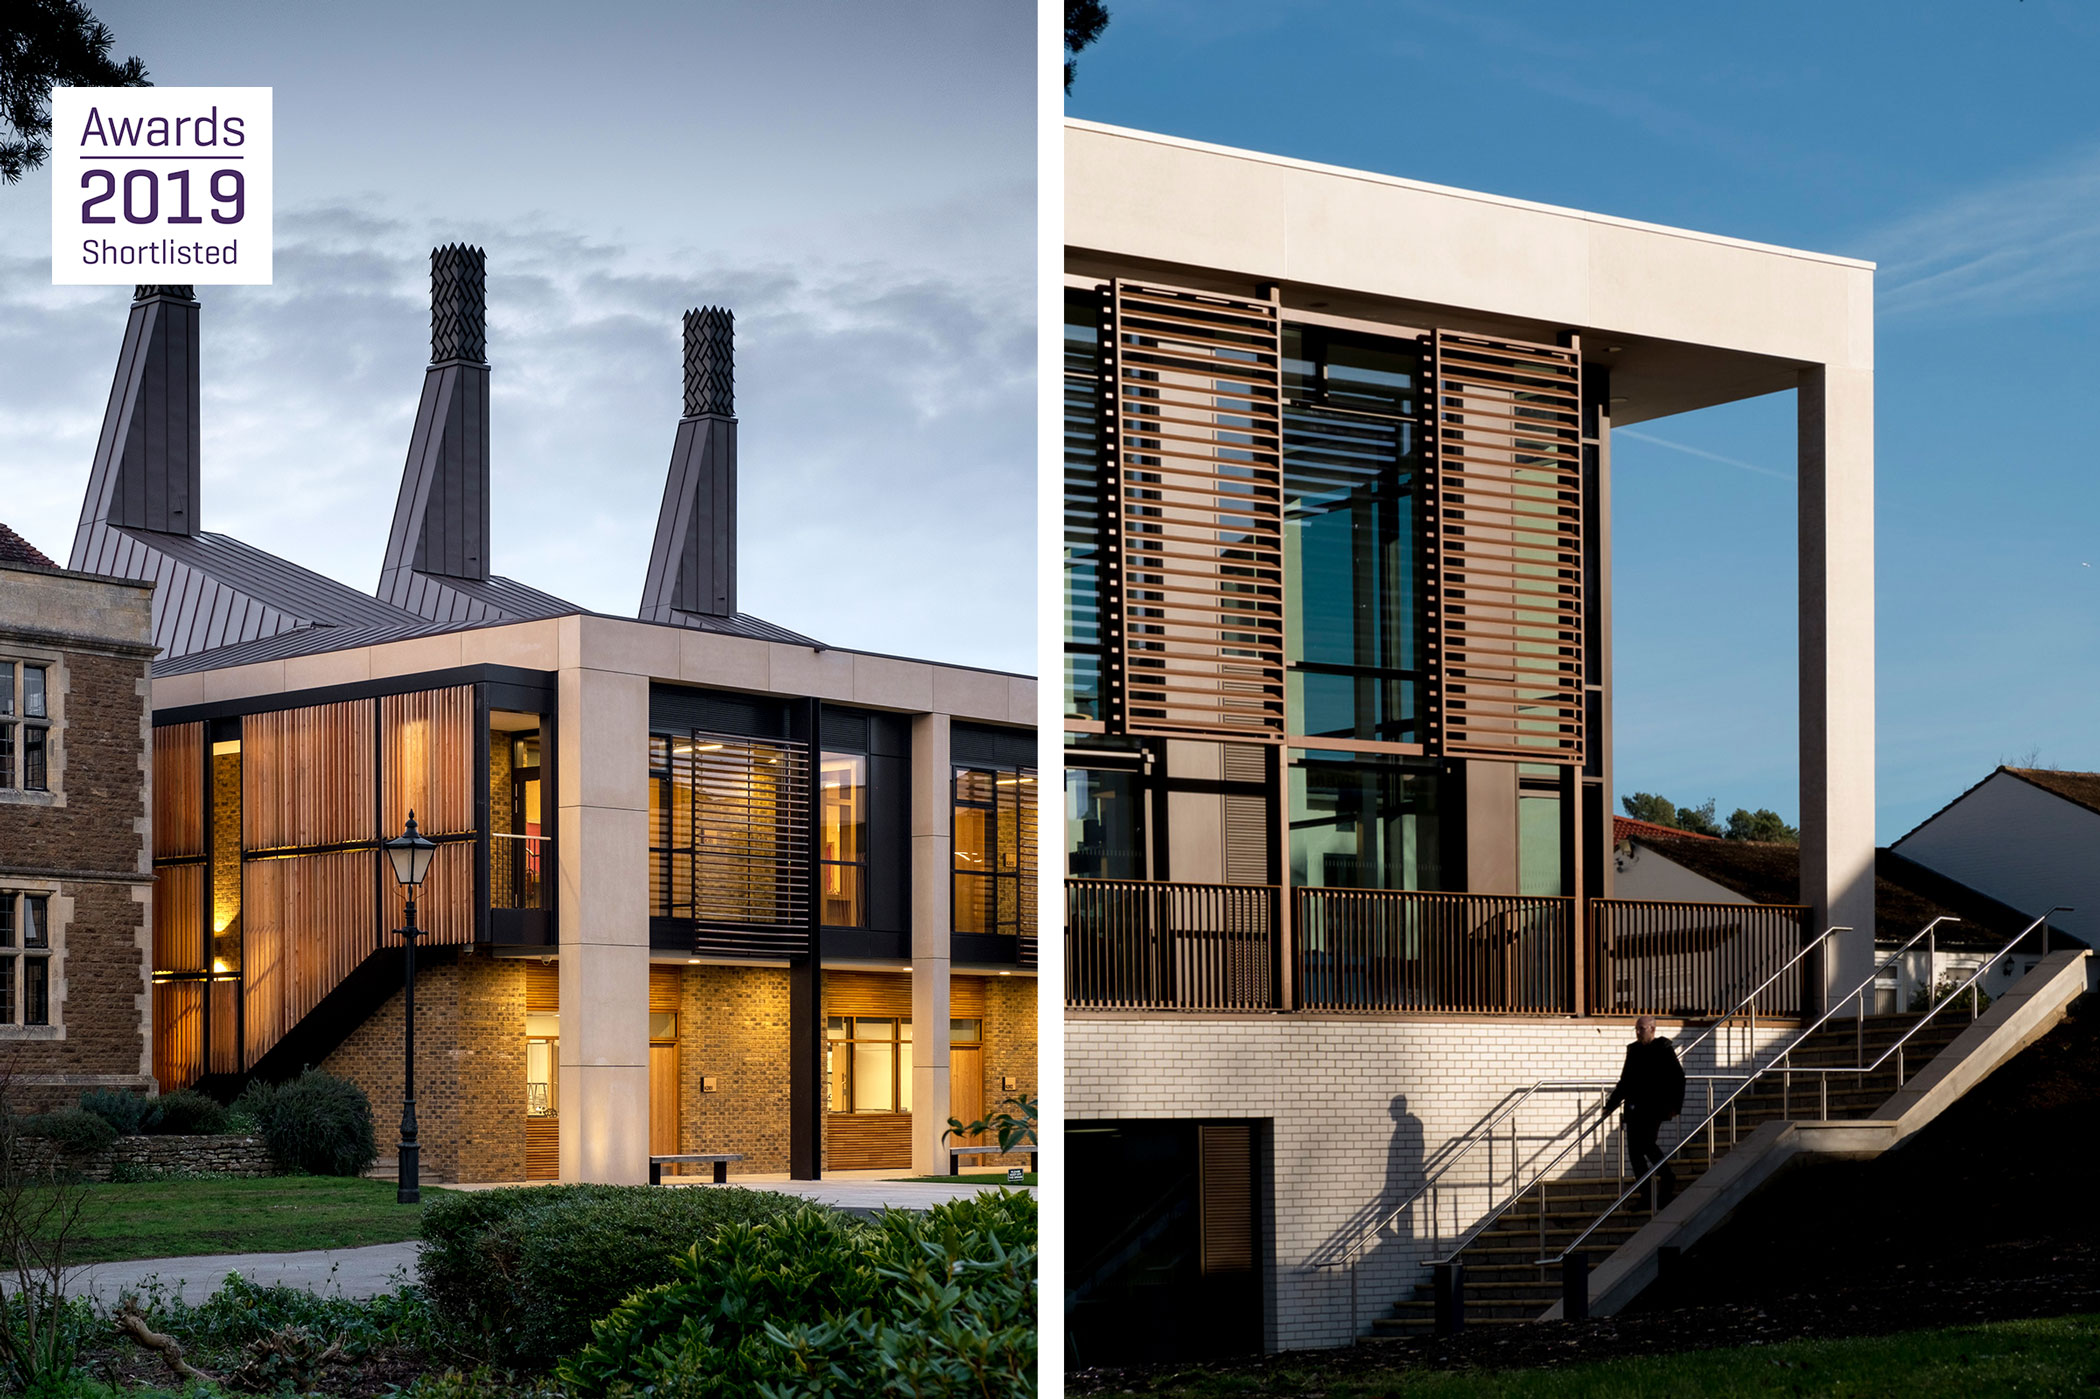 Two Design Engine Projects Shortlisted For Rics Awards 2019